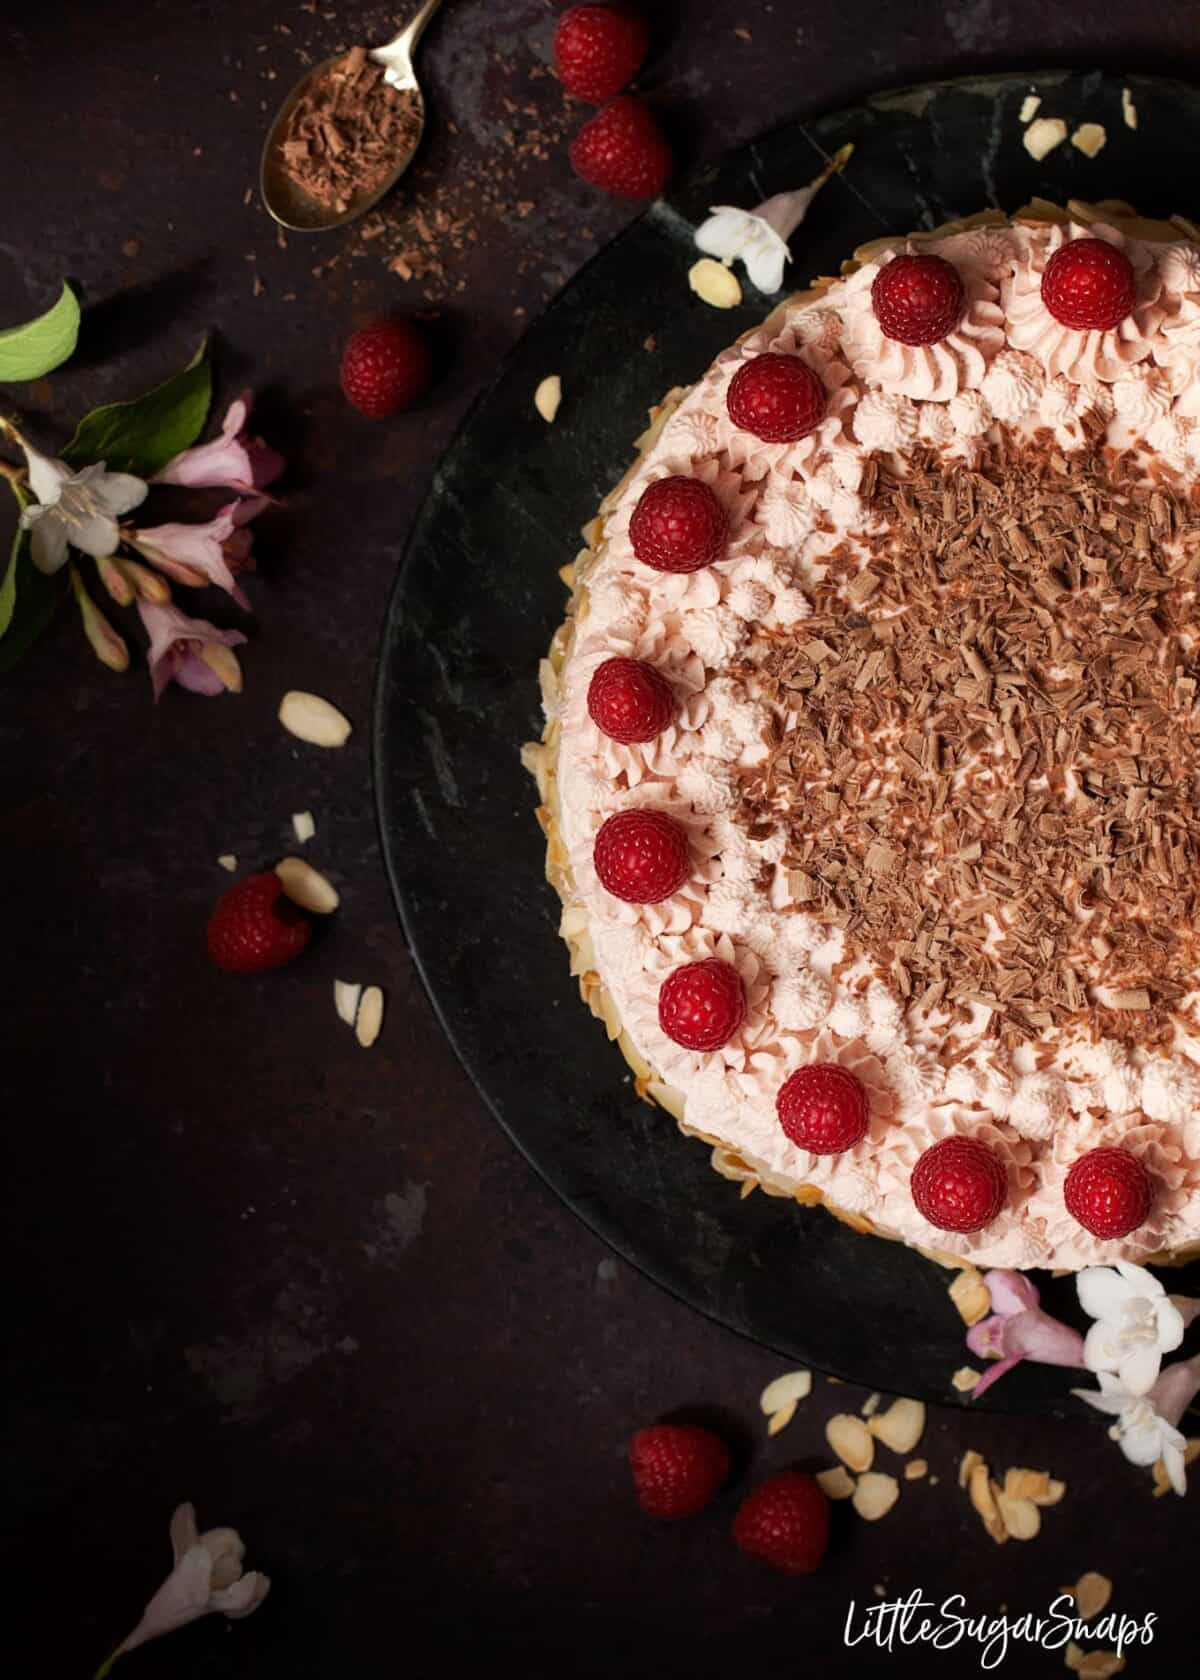 Topview of a raspberry gateau with piping cream, fresh raspberries and chocolate.